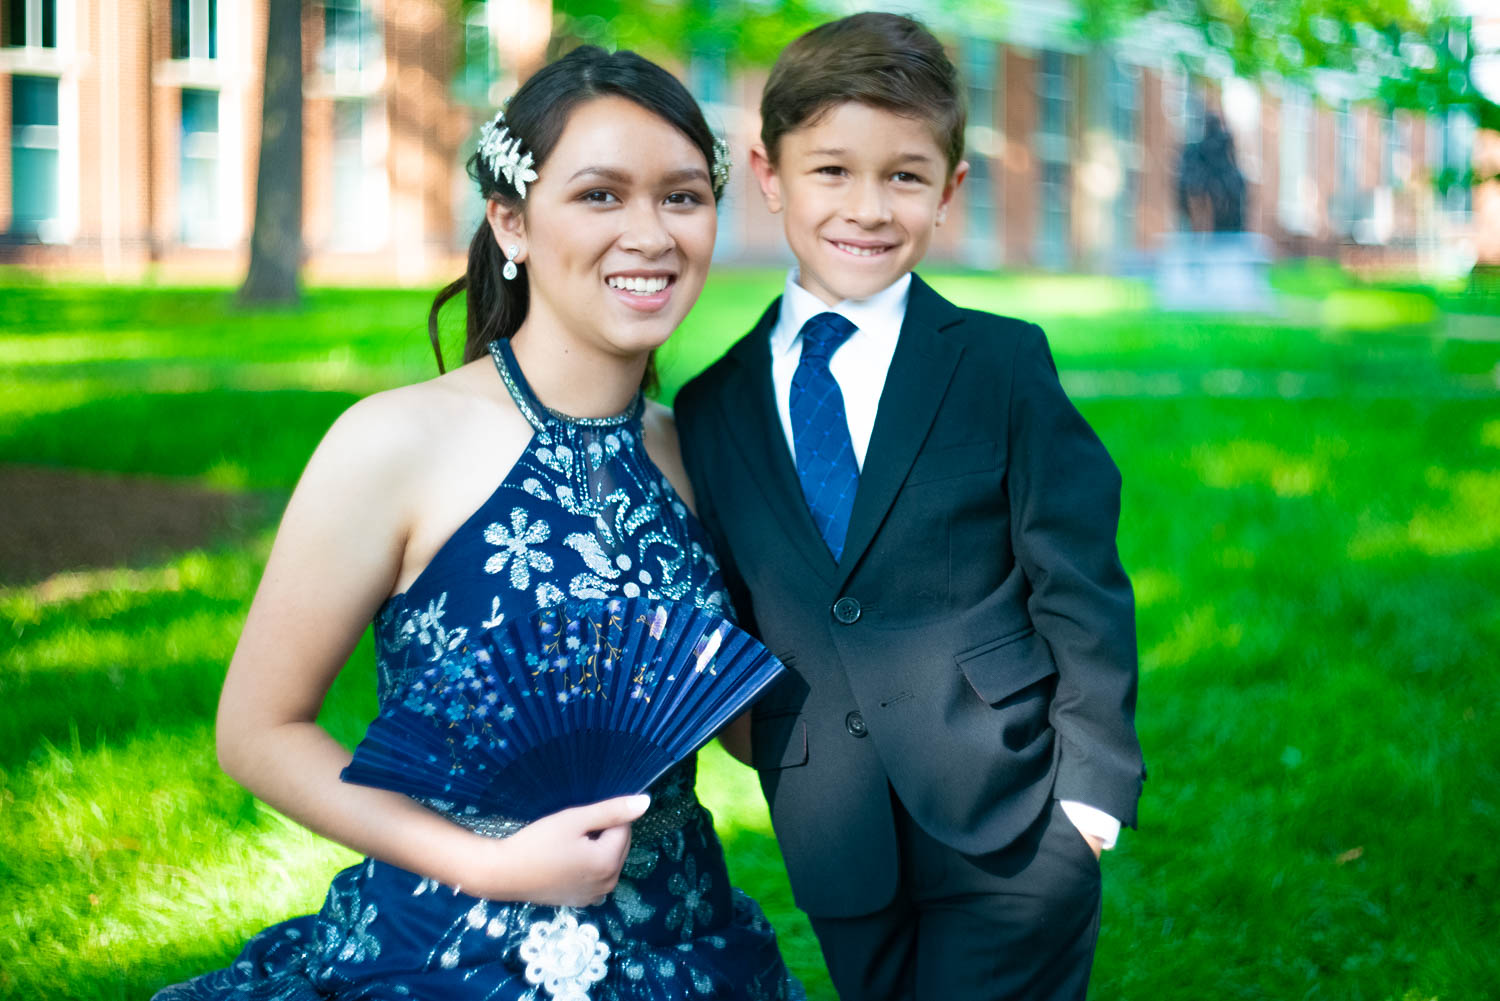 quinceanera+sweet 16+photography+family+mother+daugther+photography-8.jpg